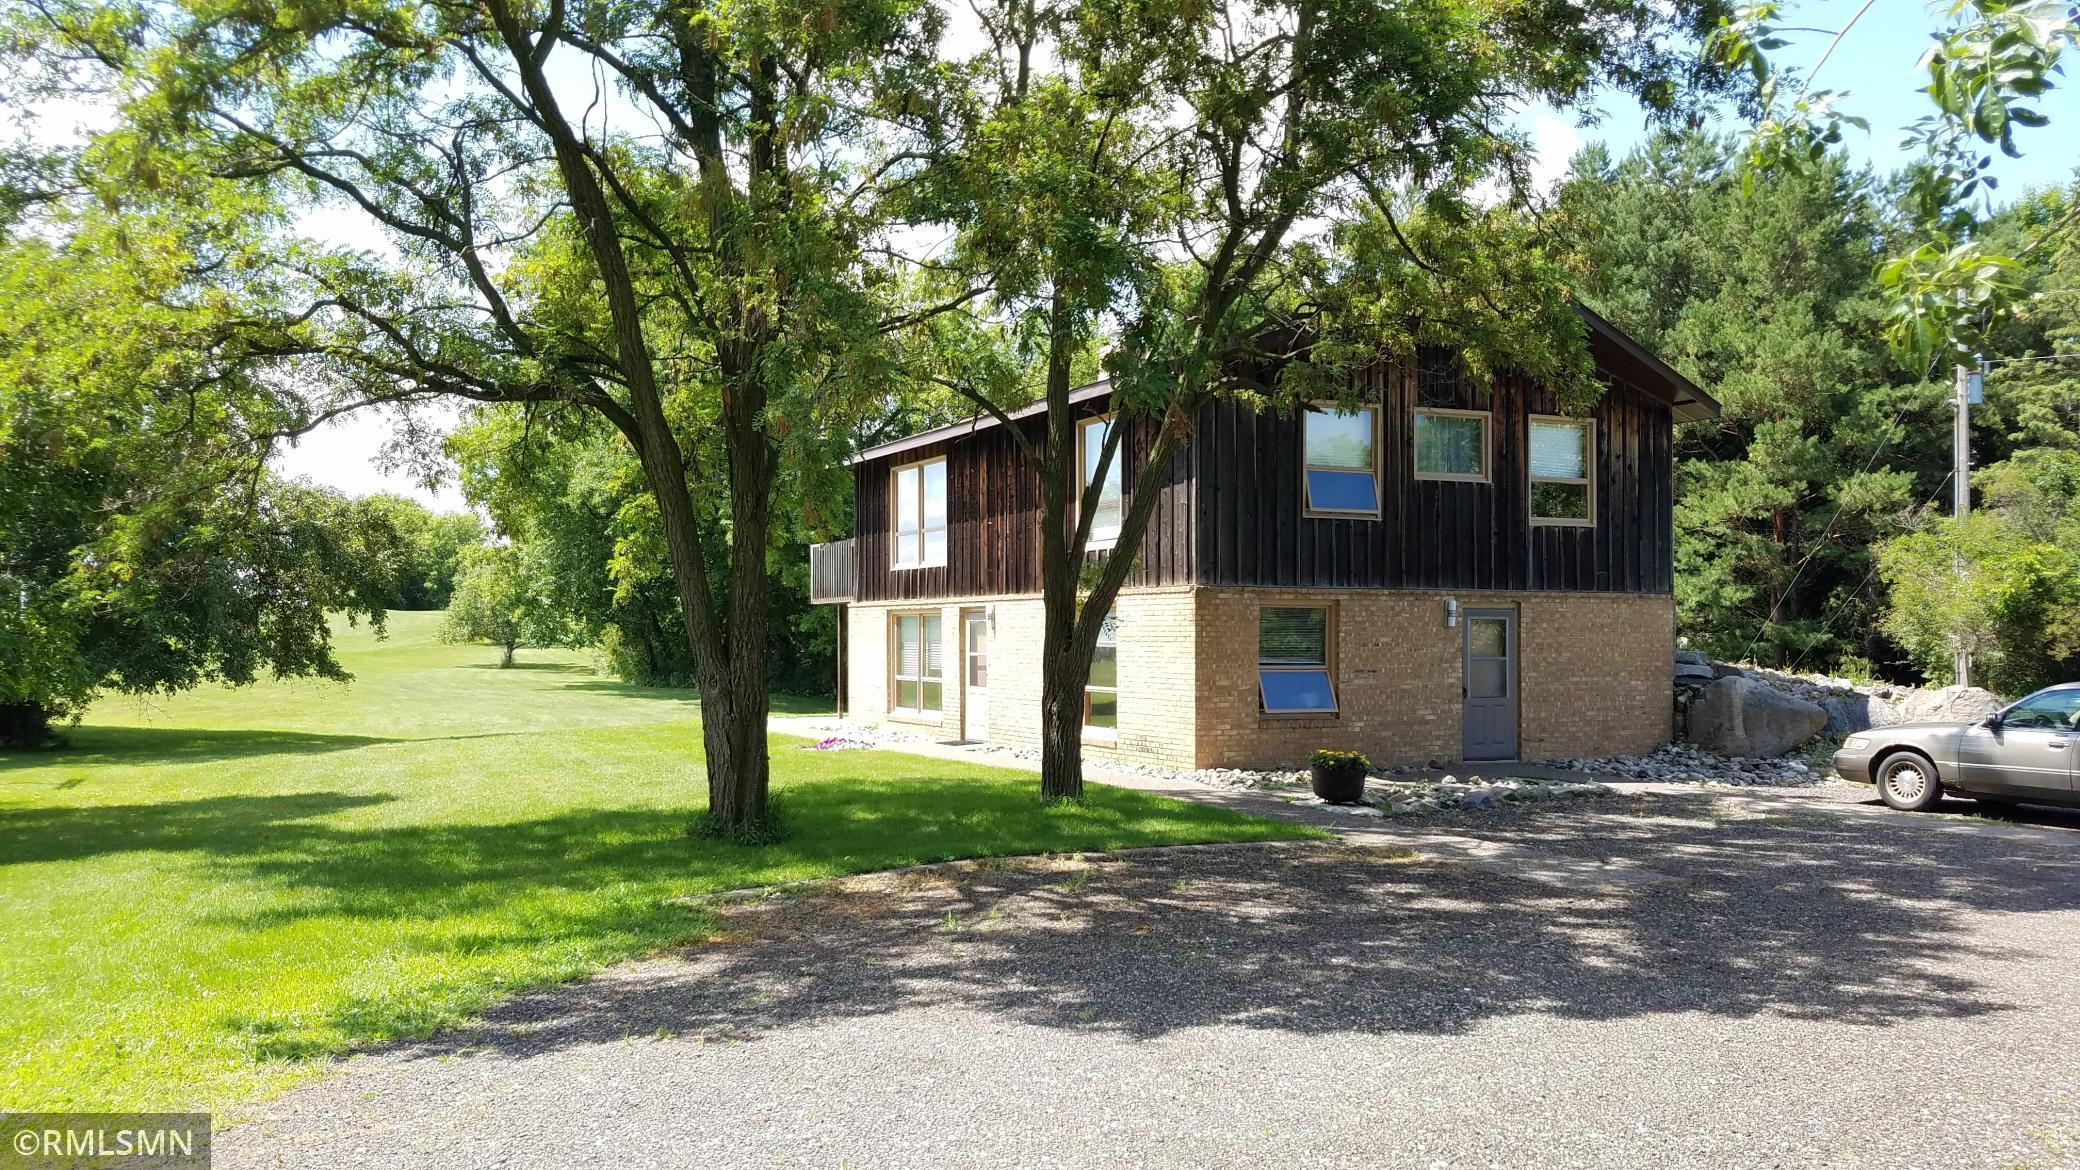 7921 County Road 7 NW Property Photo - Maple Lake, MN real estate listing